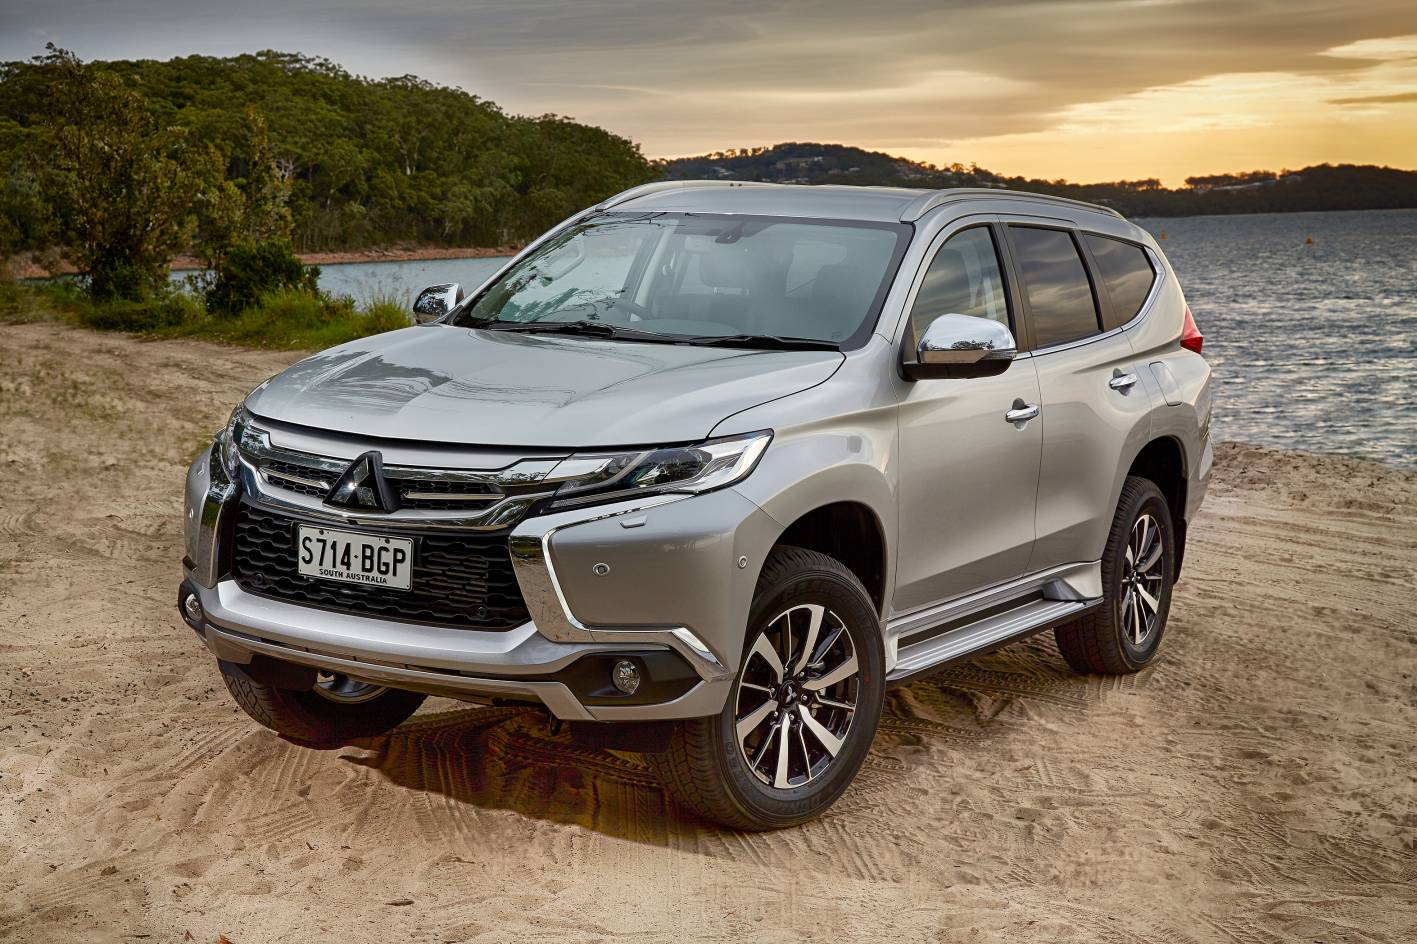 Mitsubishi Pajero Sport Now Available With Third Row Seats